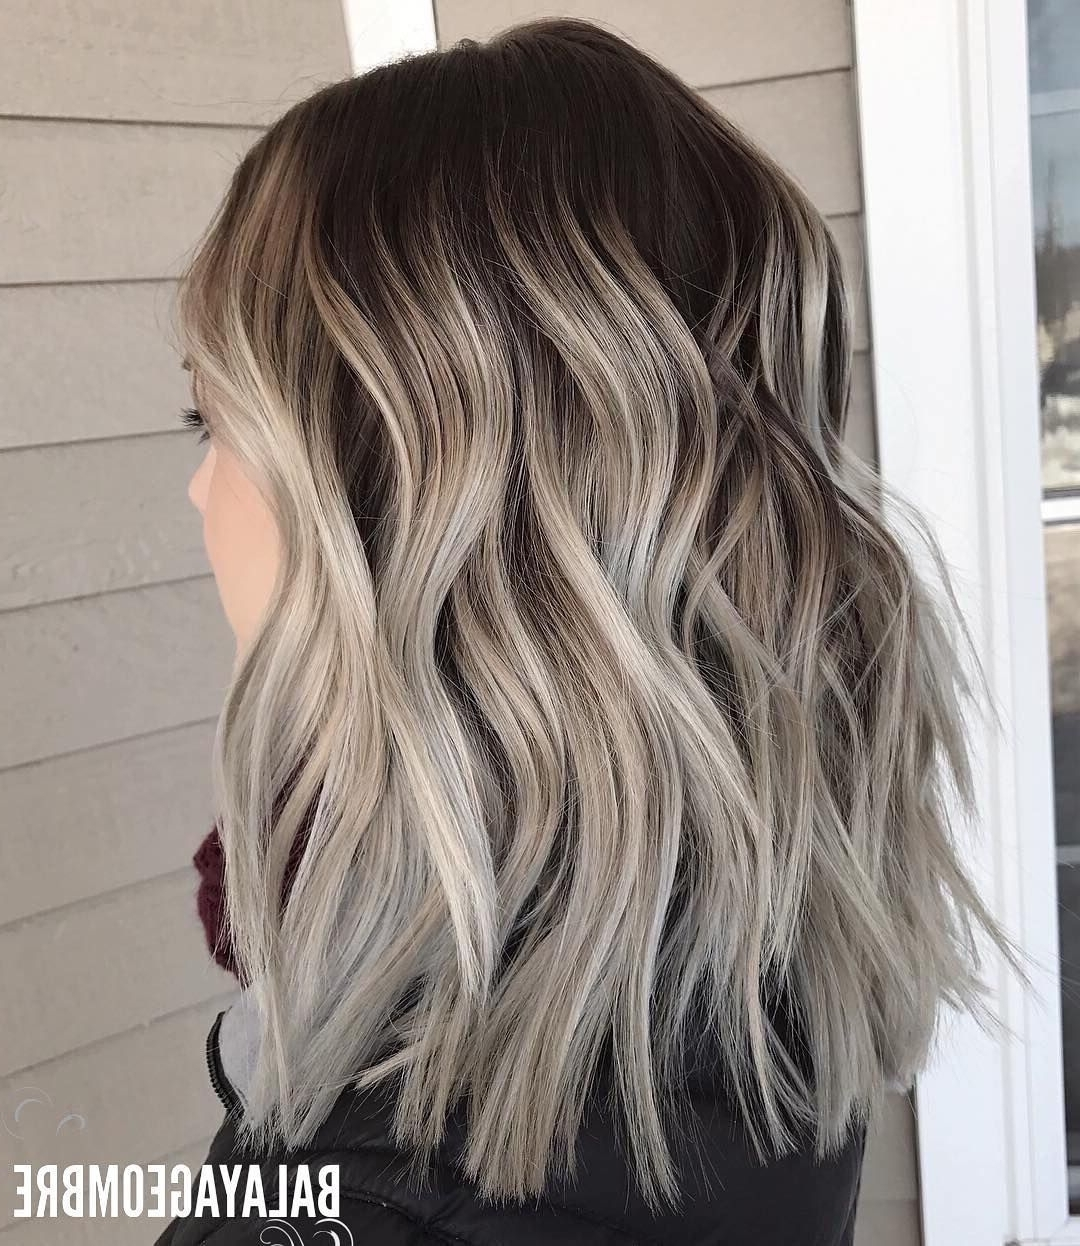 10 Best Medium Layered Hairstyles 2018 Brown & Ash Blonde Fashion With Well Liked Medium Blonde Balayage Hairstyles (View 9 of 20)